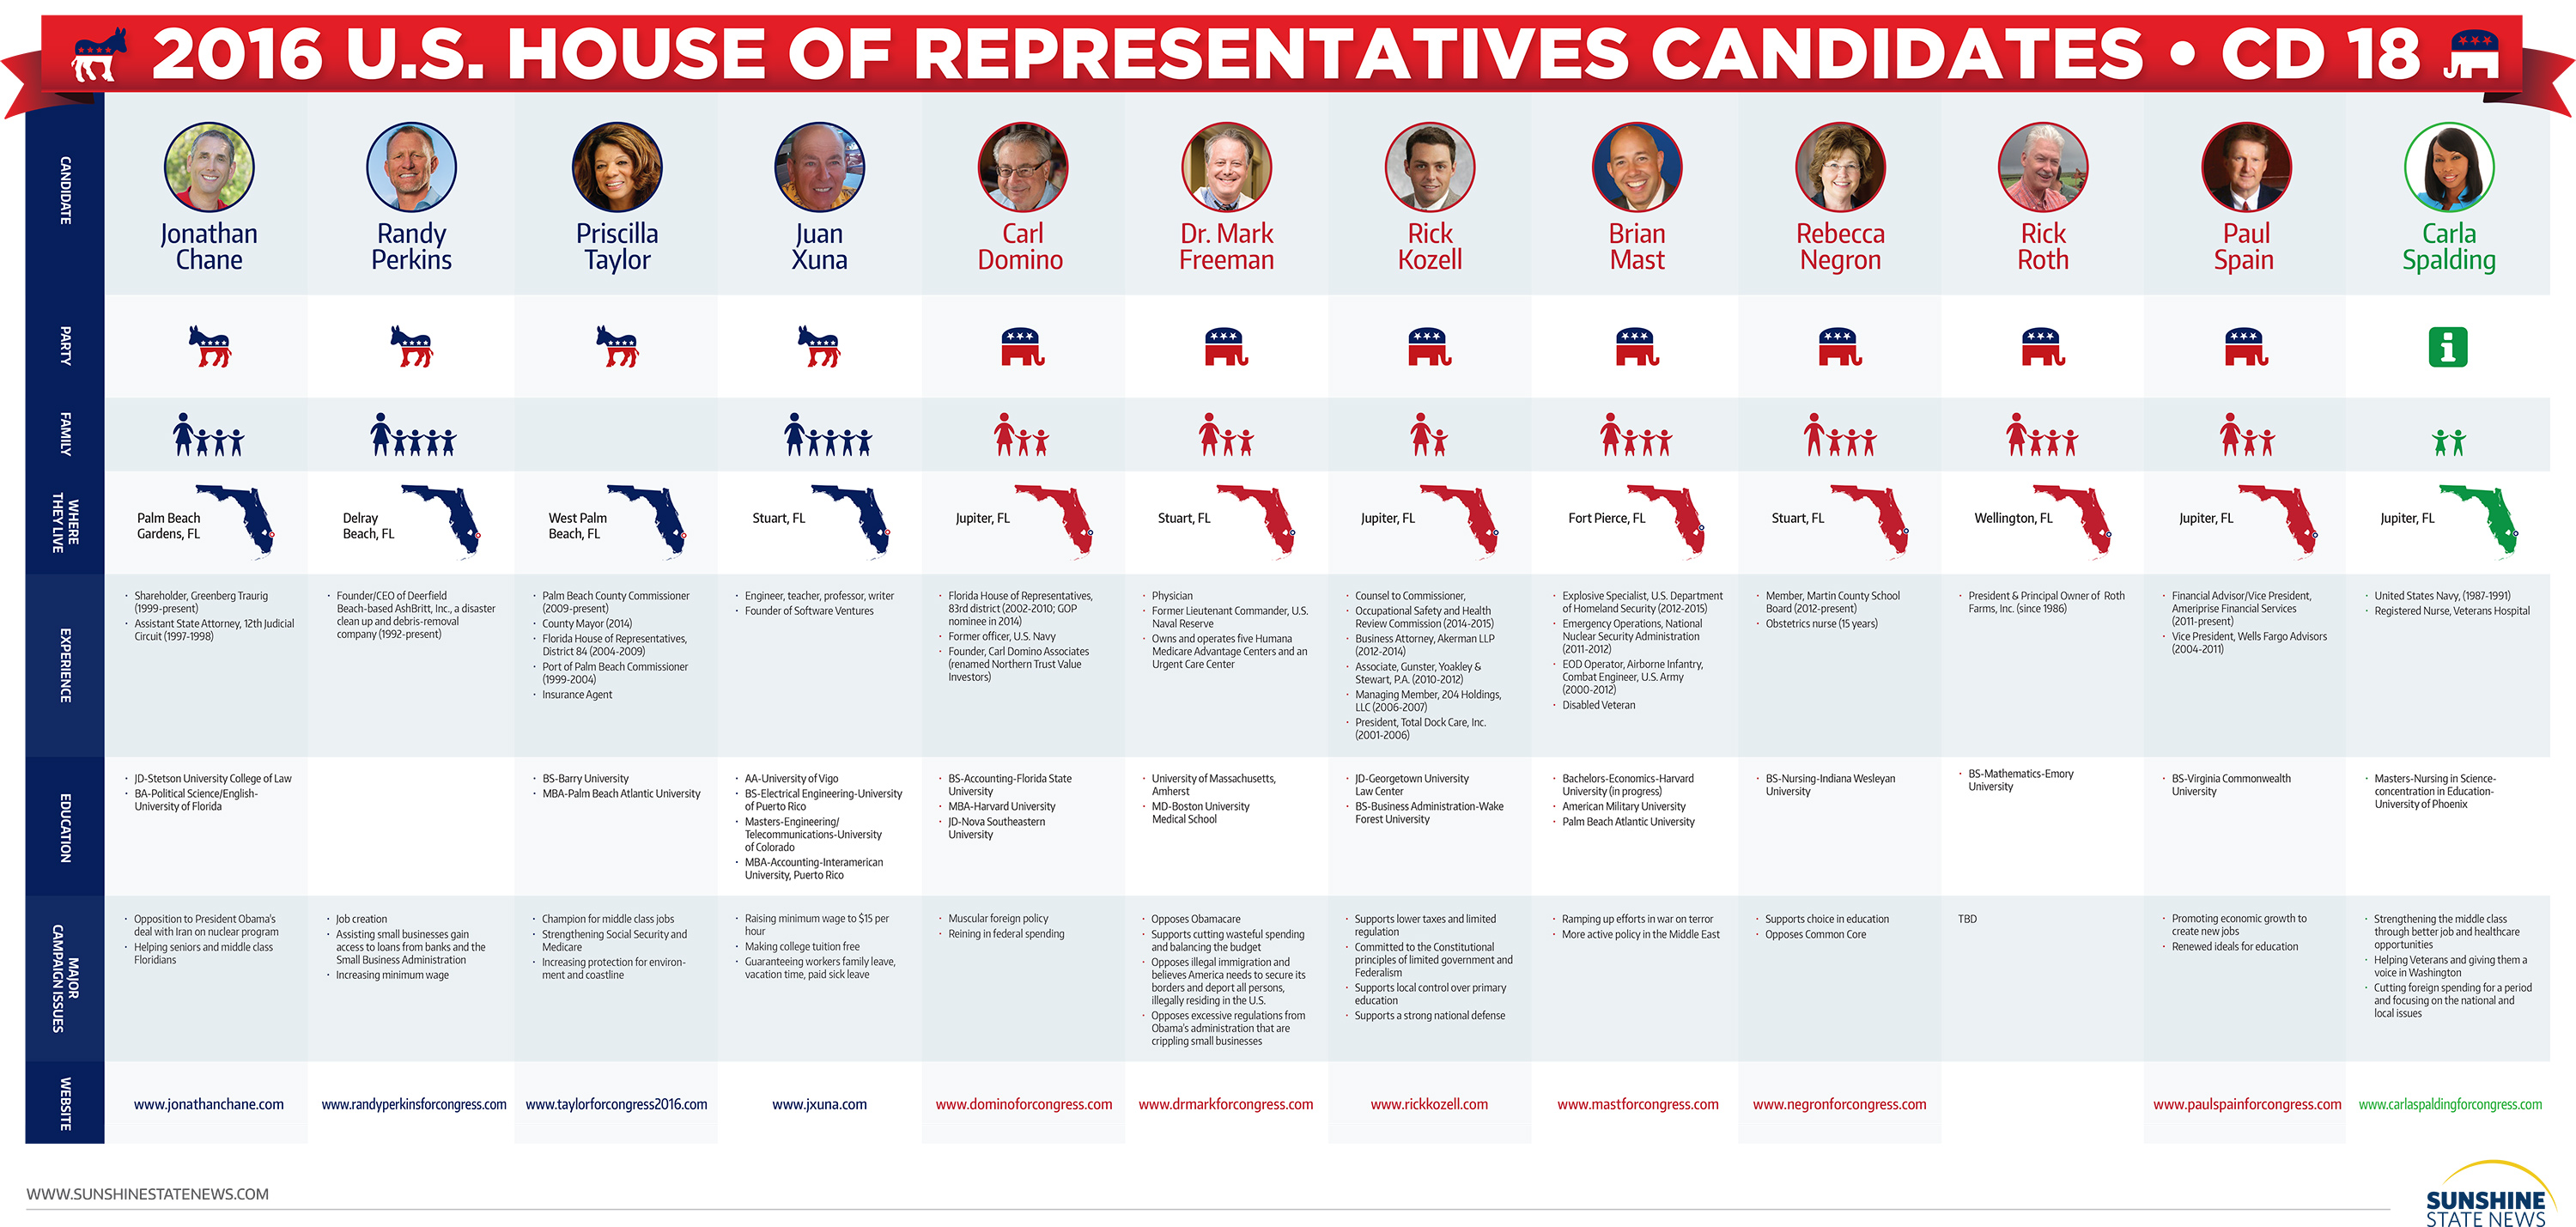 pare US House of Representatives CD Candidates at a Glance